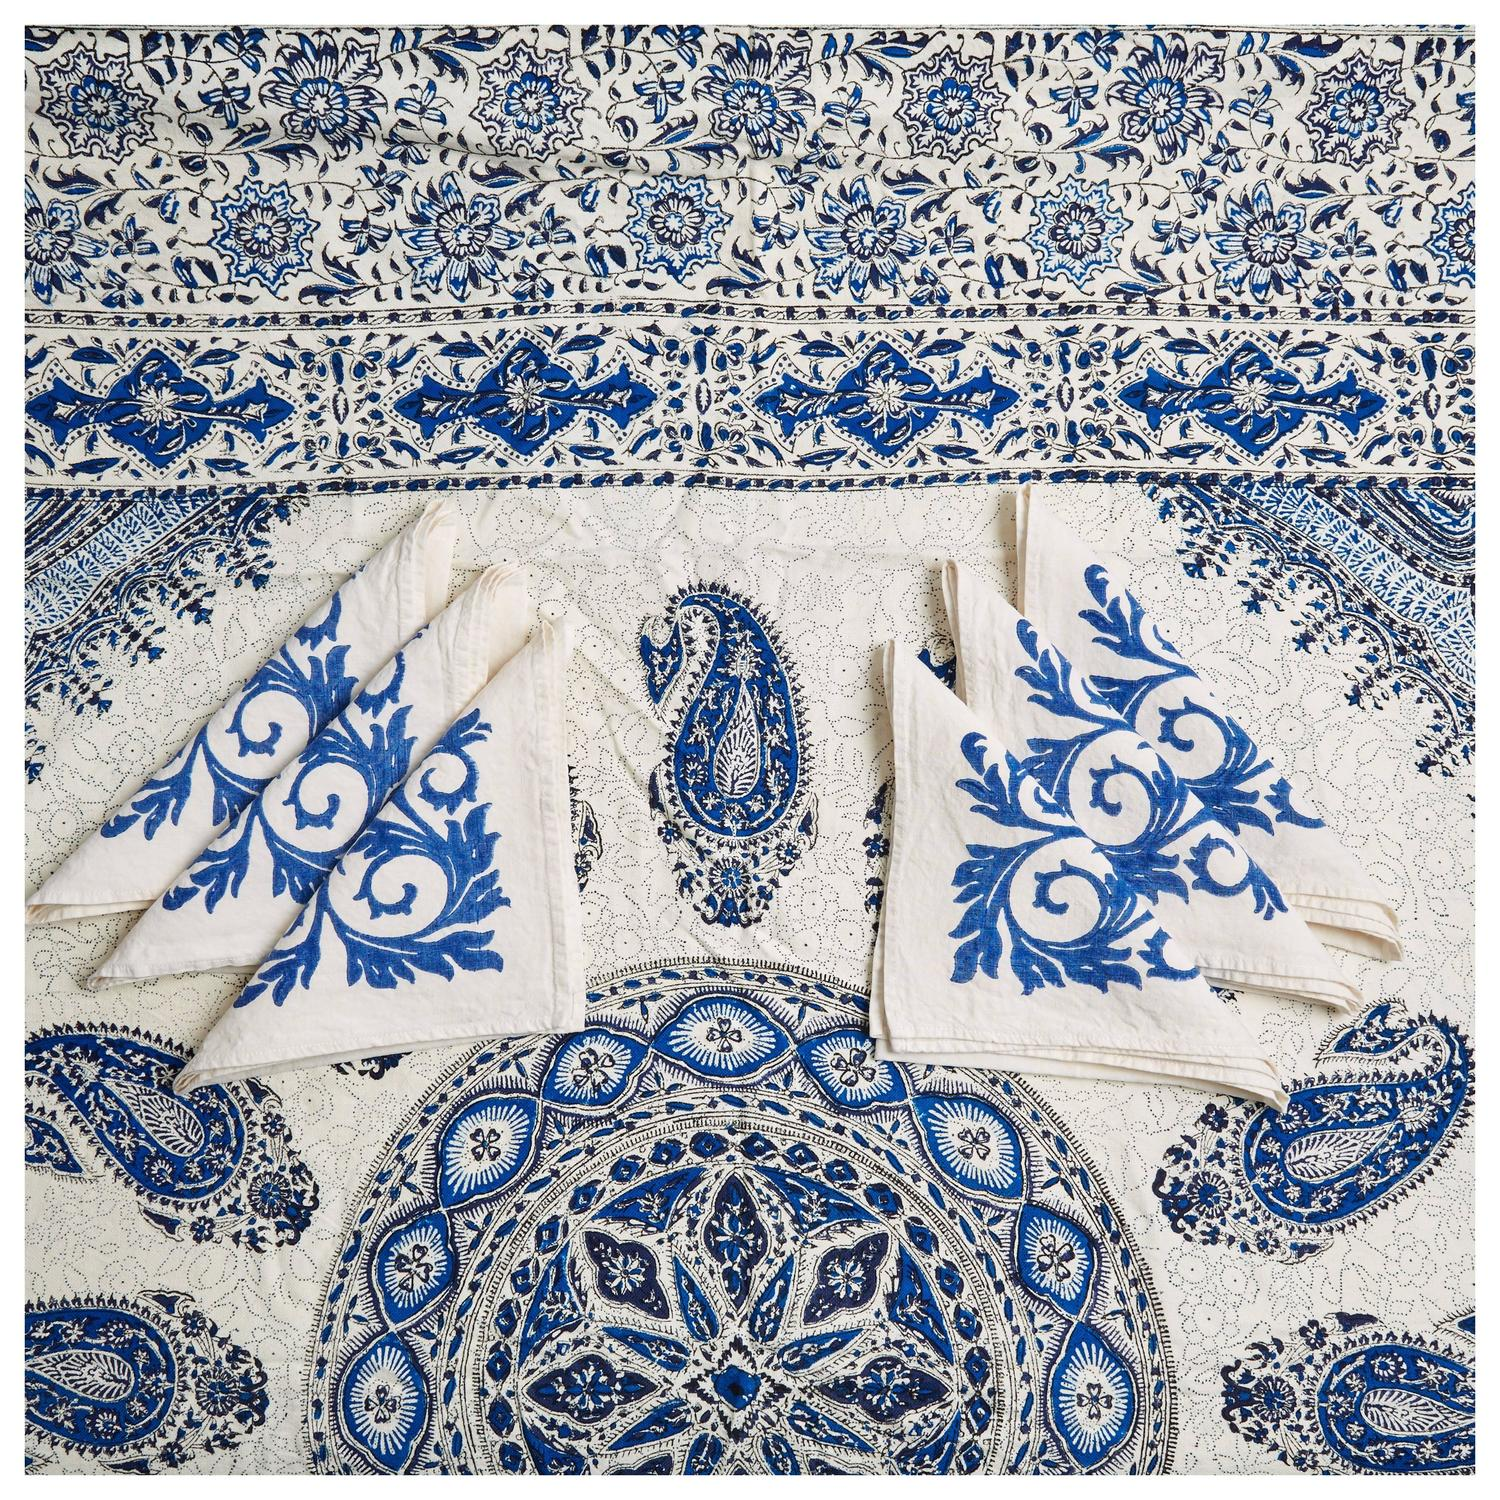 Blue And White Ghalamkar Square Tablecloth And Hand